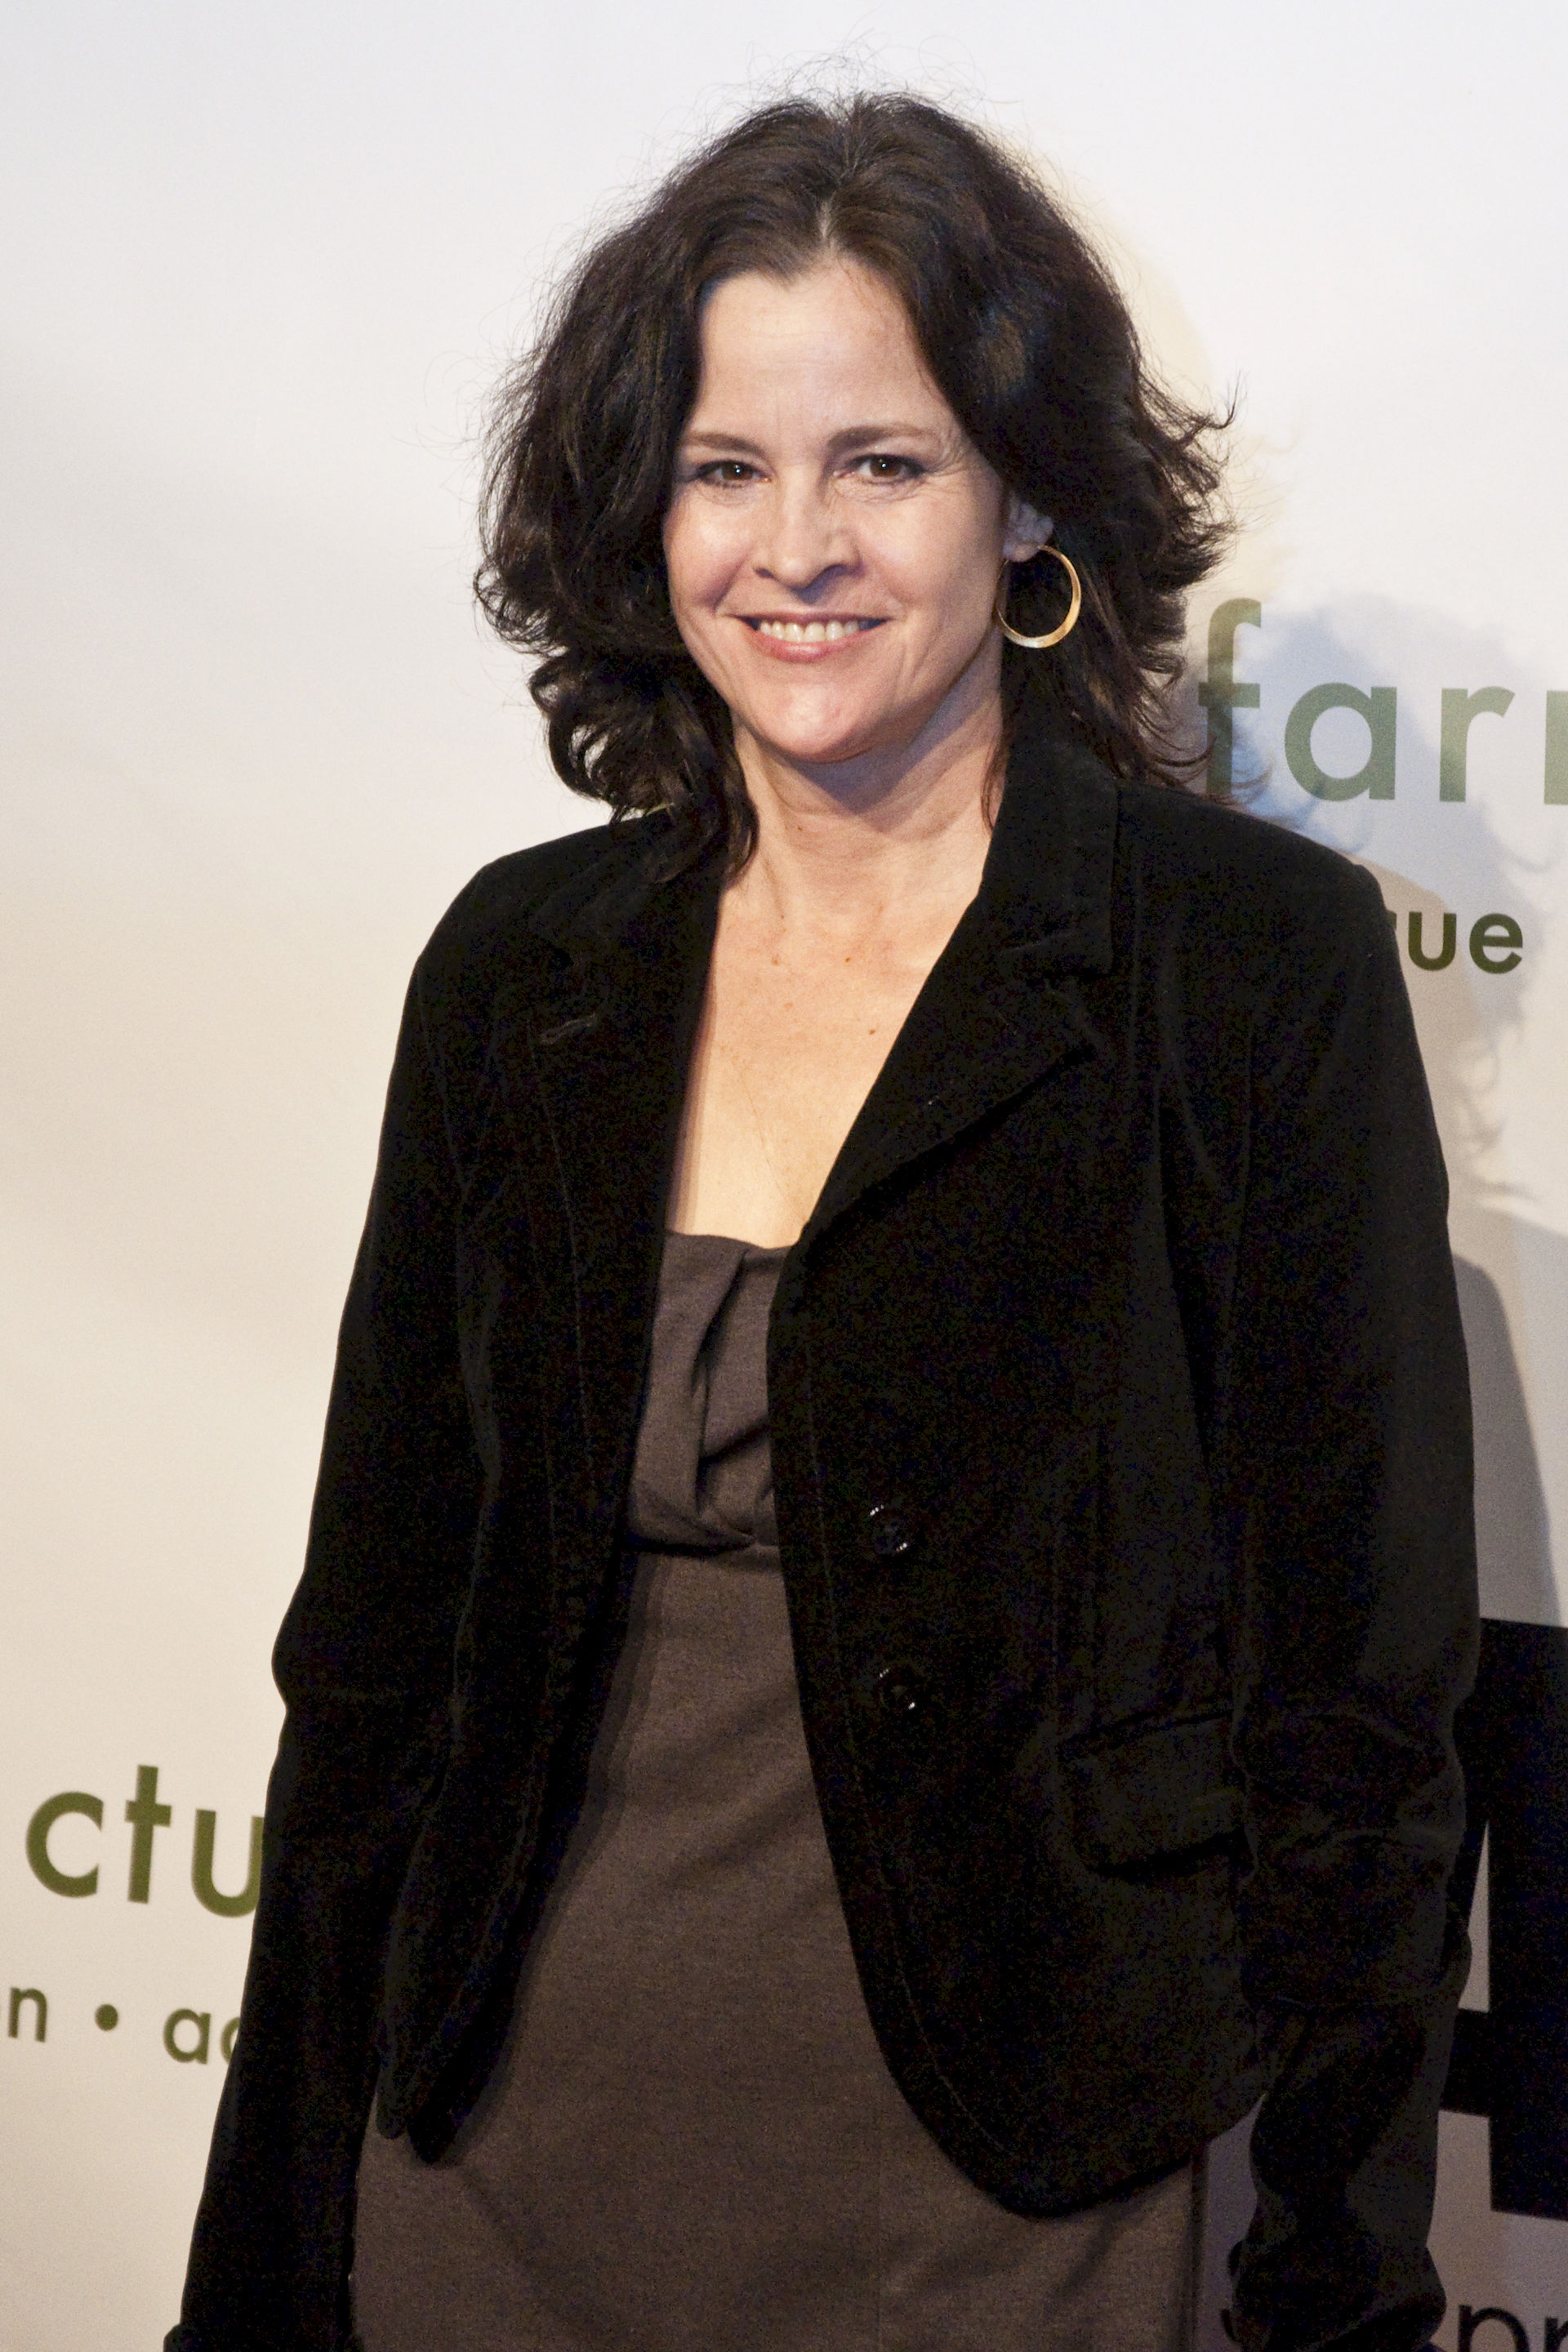 Photo of Ally Sheedy: American actress